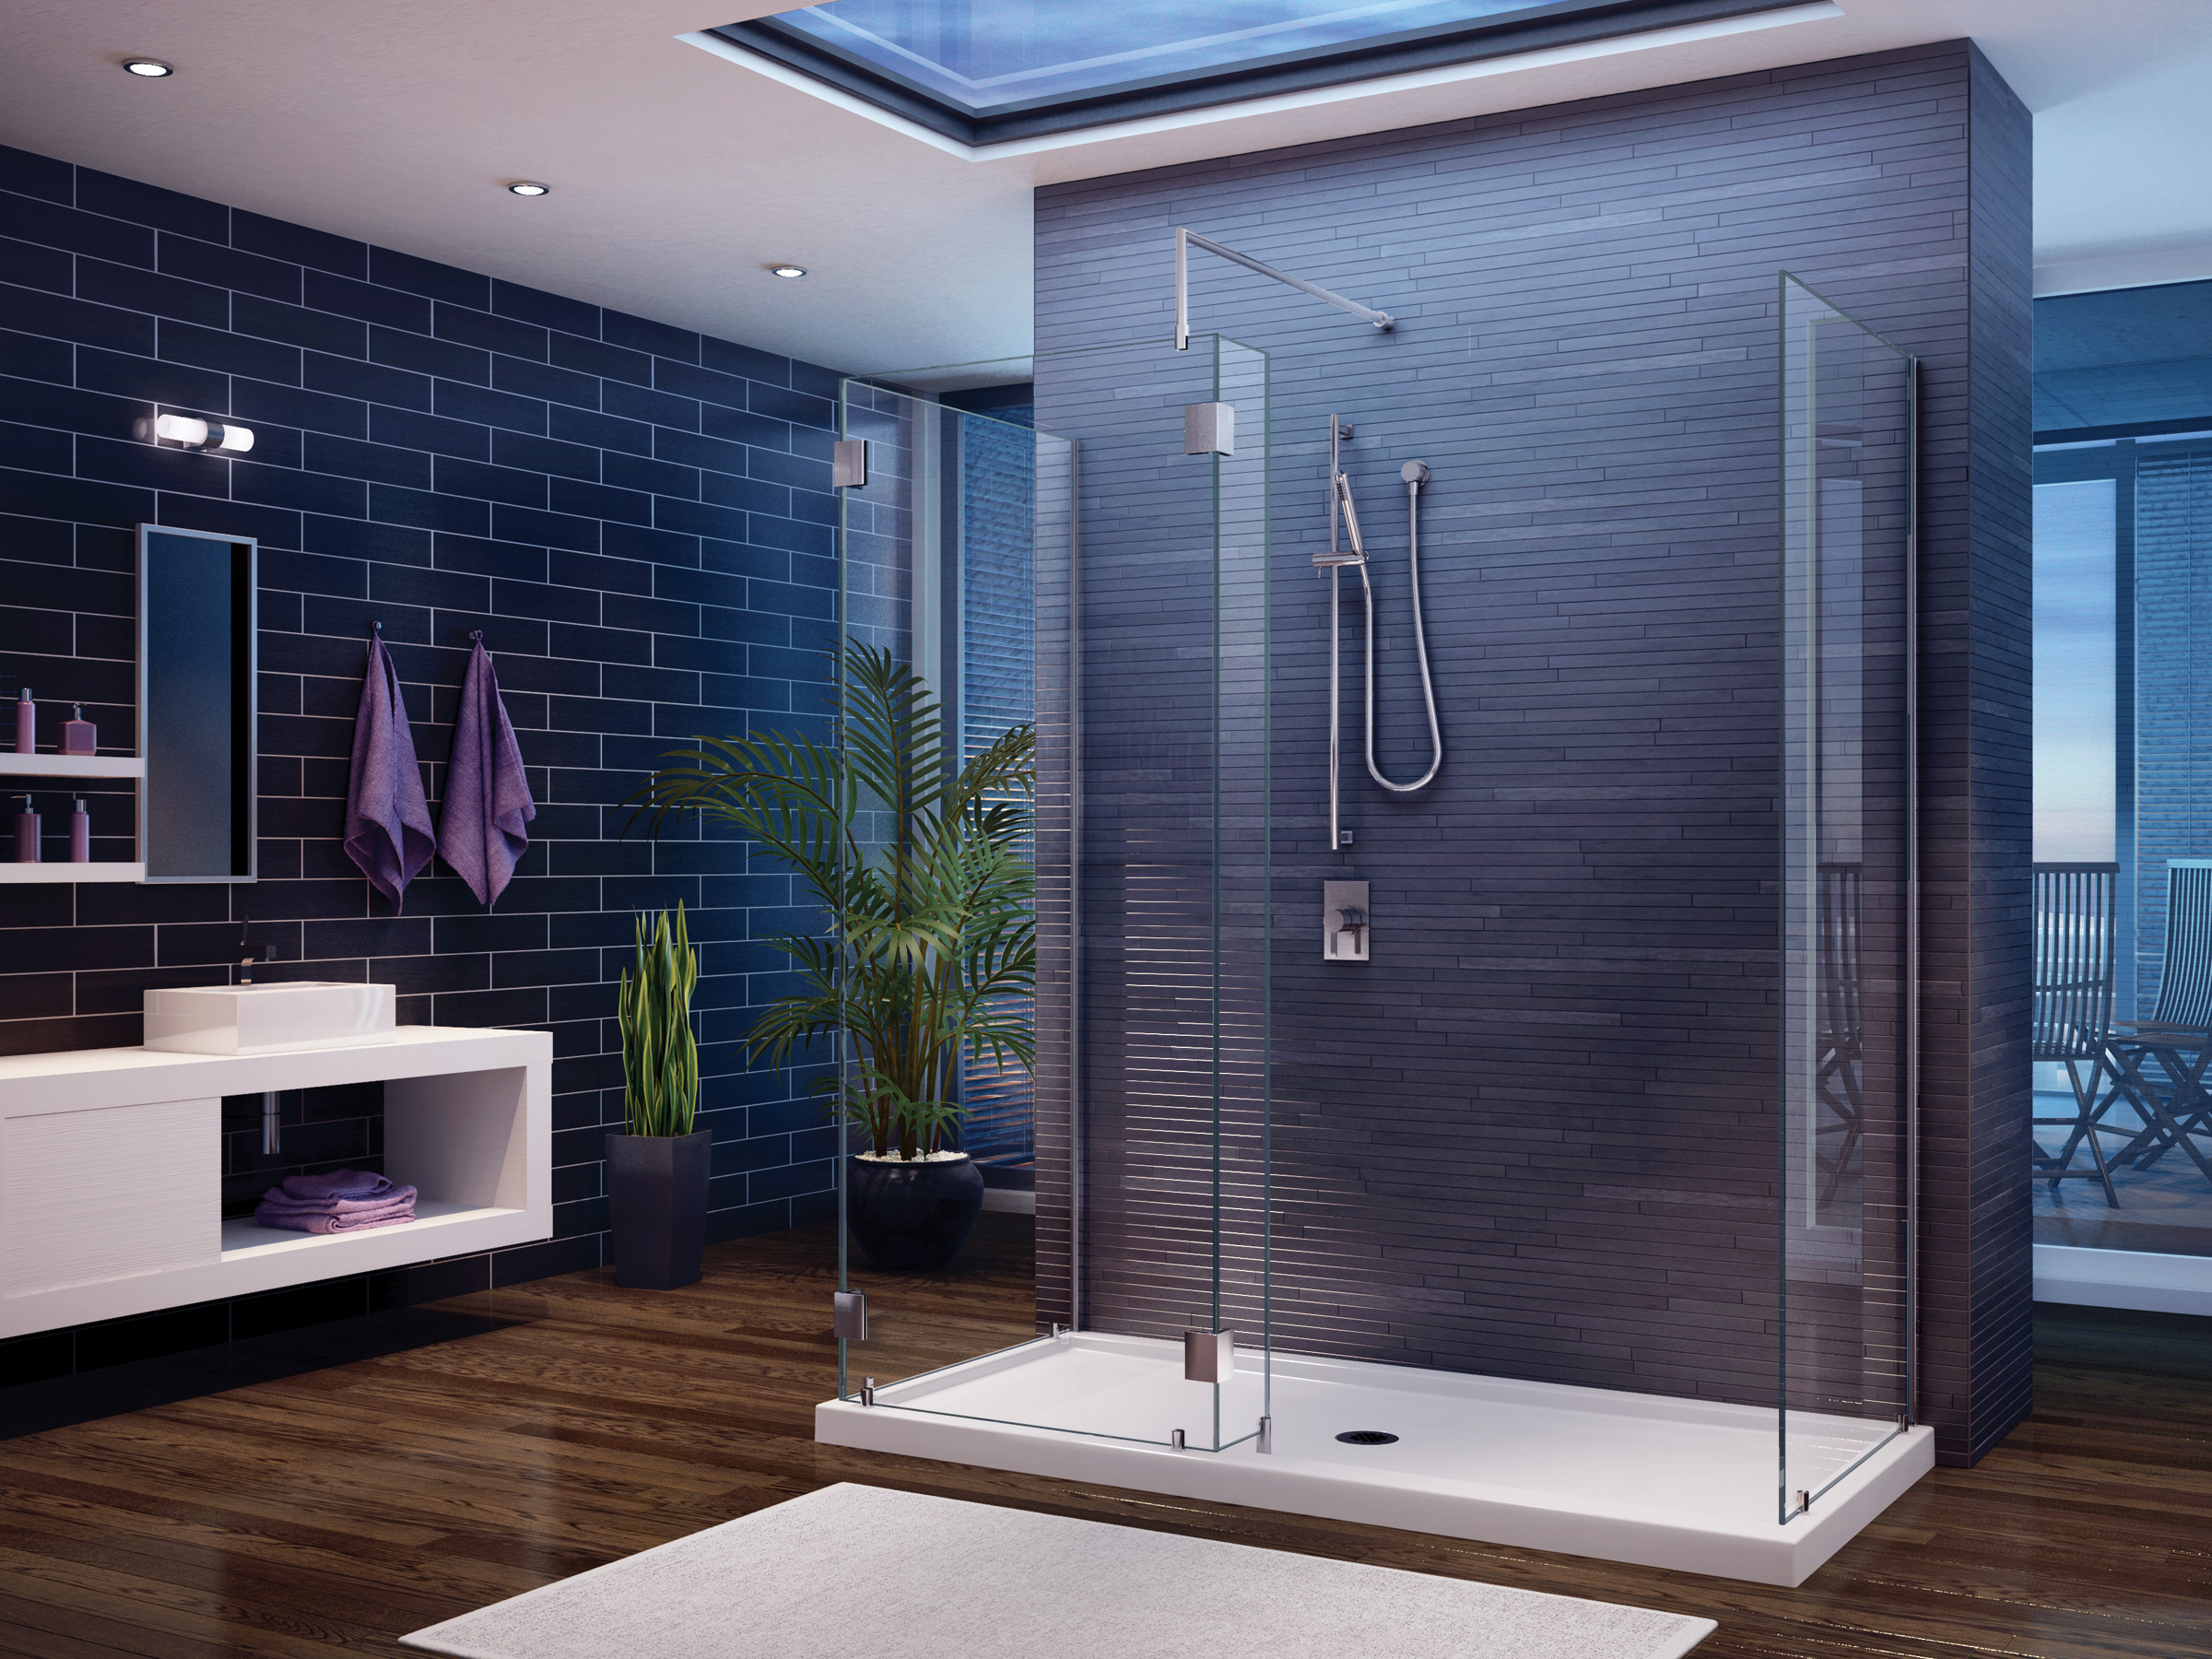 10 Stunning Bathroom Ideas You Have to See – Wow Amazing